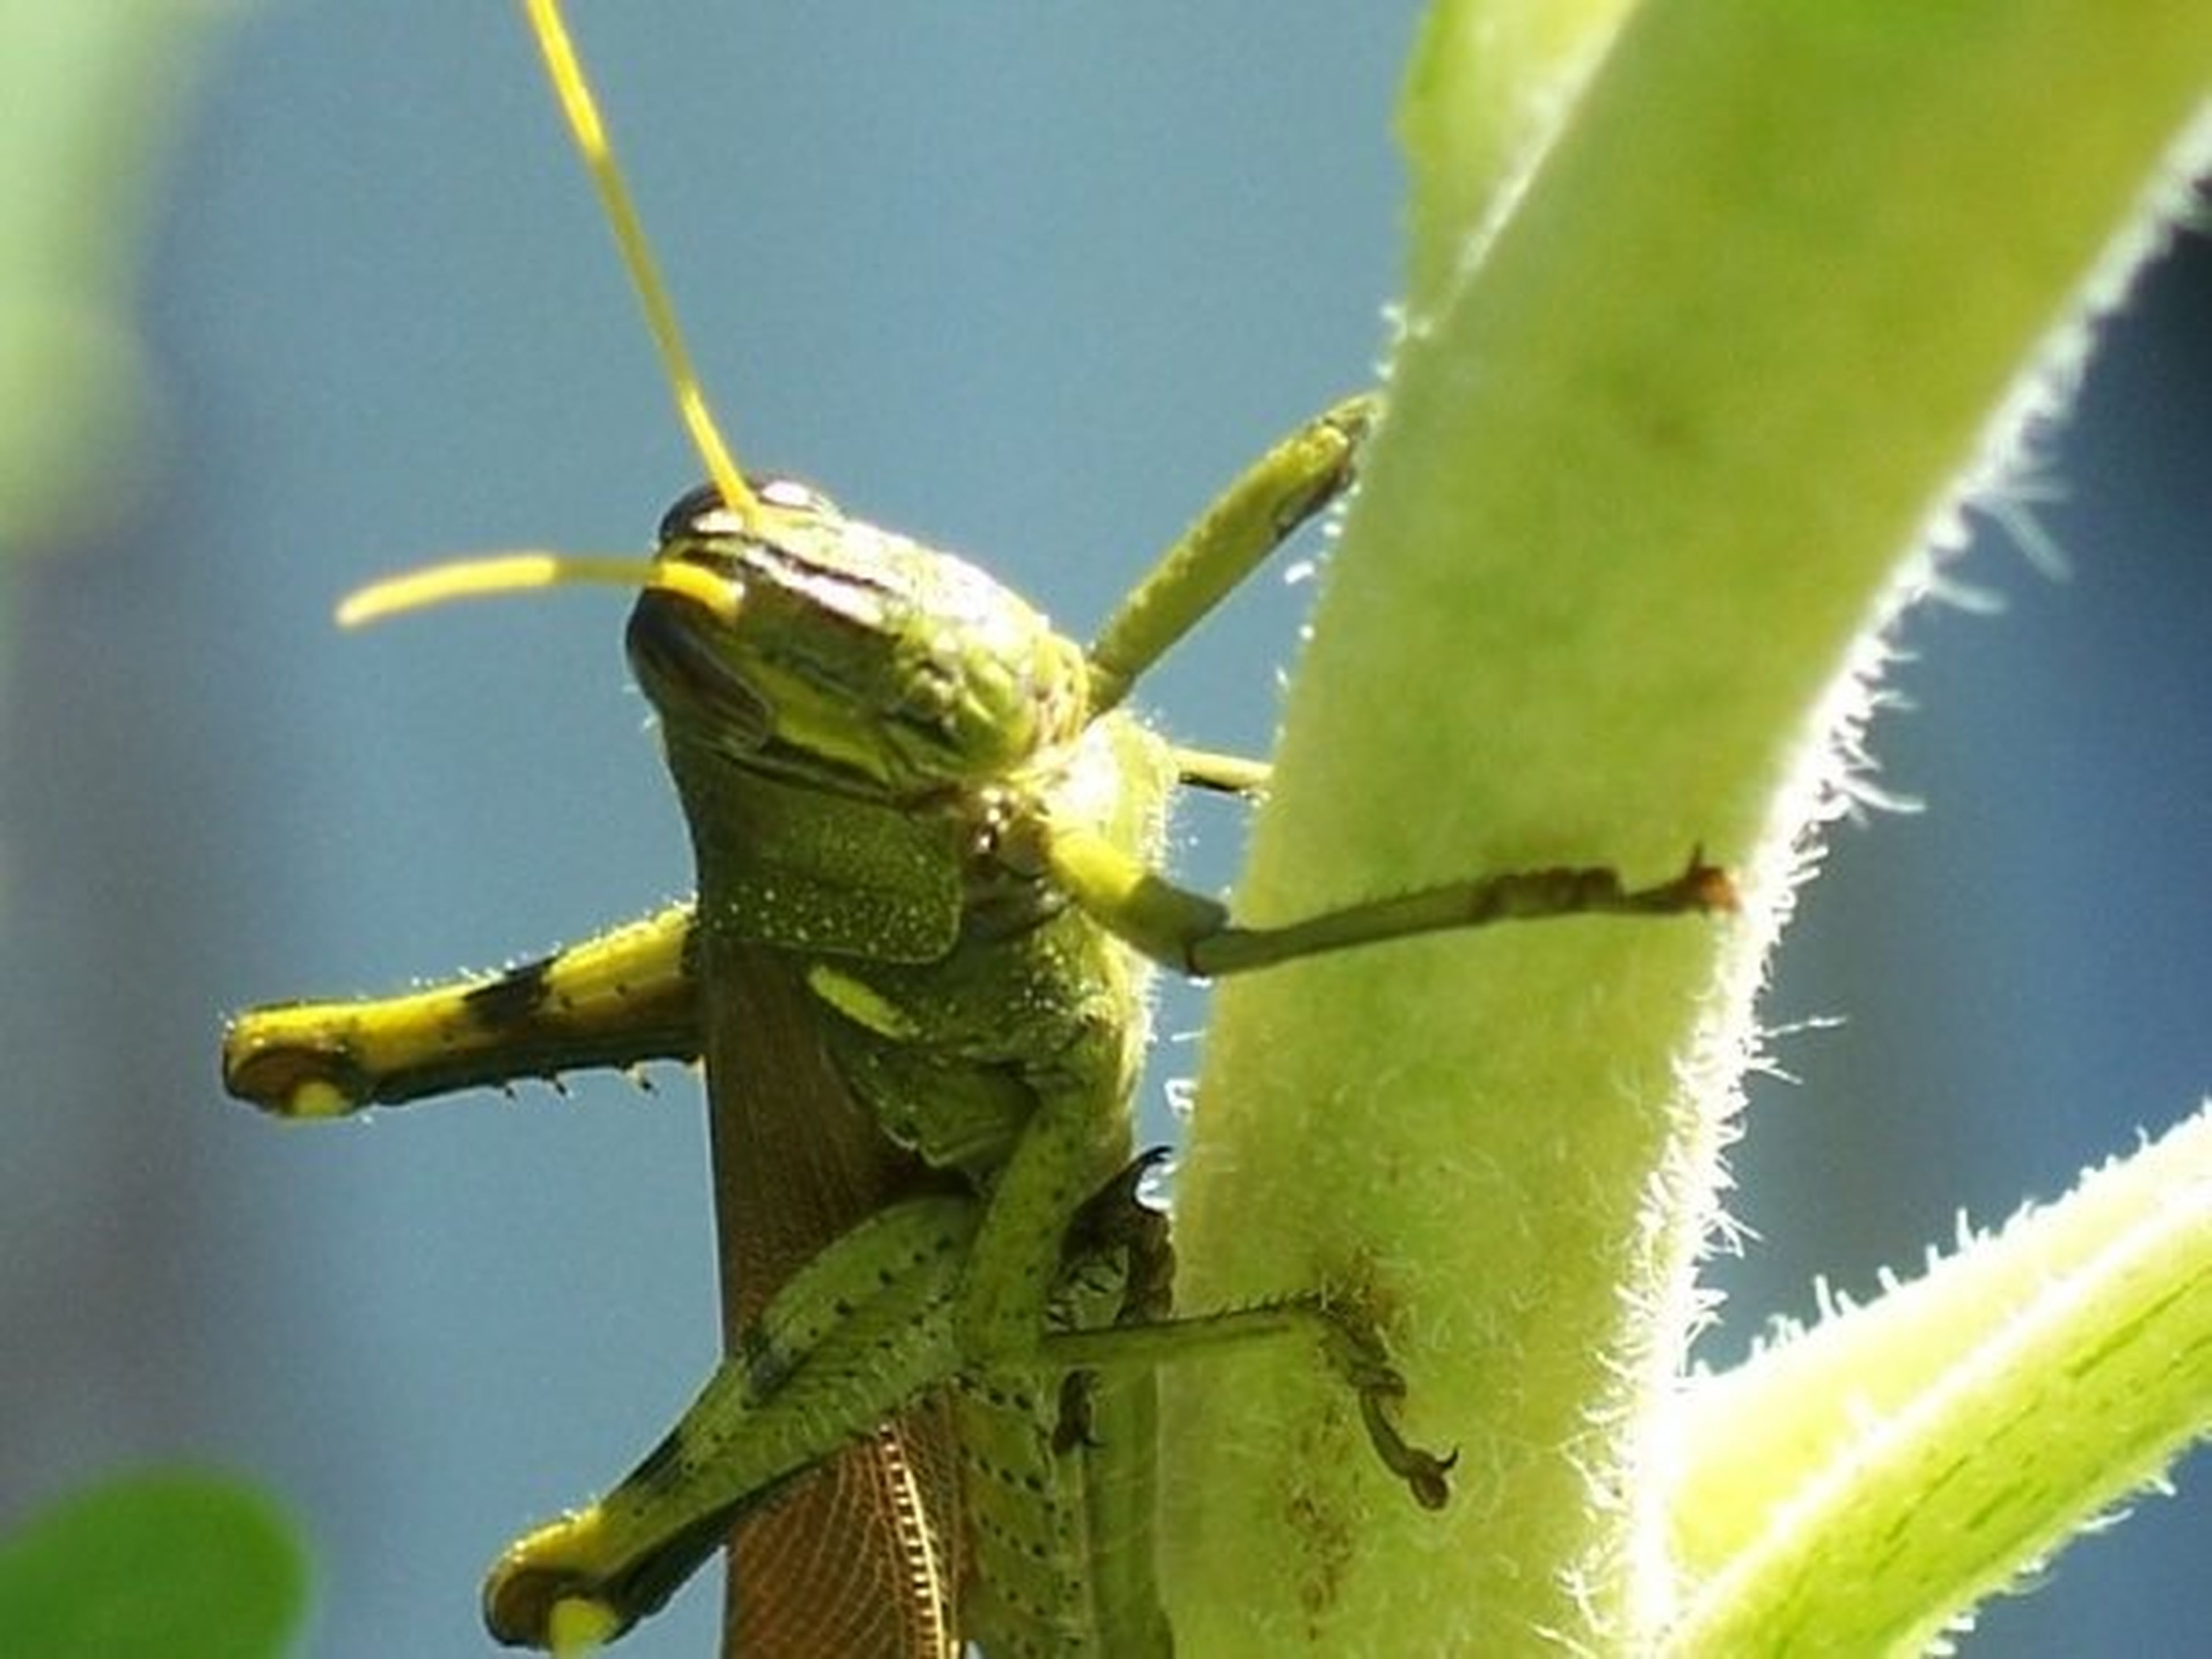 animals in the wild, animal themes, one animal, wildlife, green color, focus on foreground, close-up, insect, nature, reptile, selective focus, outdoors, day, yellow, no people, leaf, animal wildlife, full length, perching, lizard